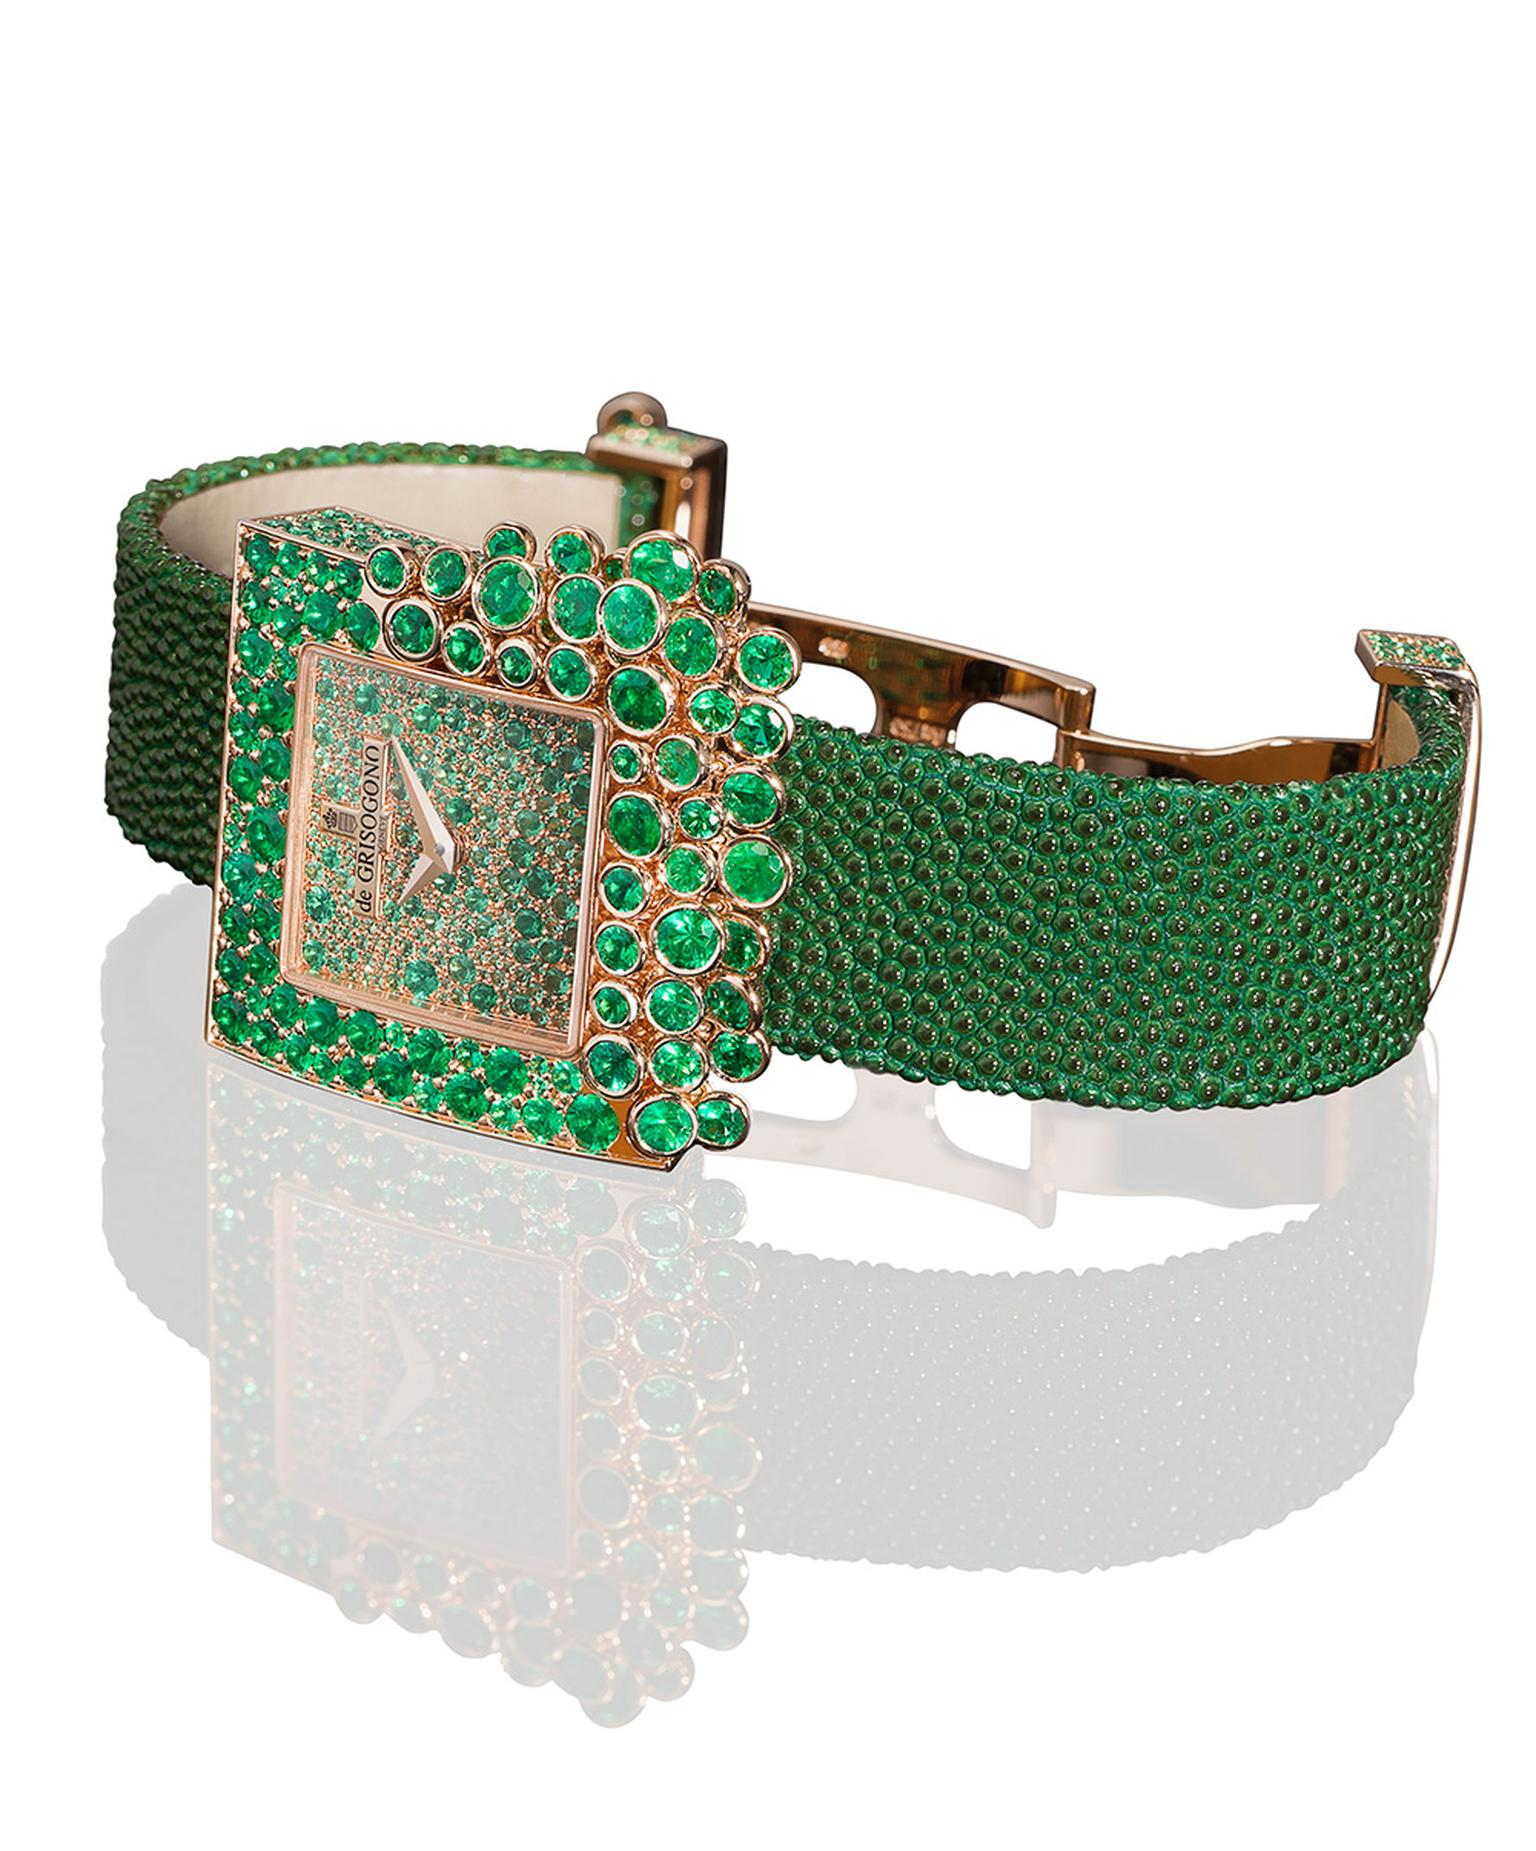 deGRISOGONO-SUGAR-WATCH-GREEN-S15-WB